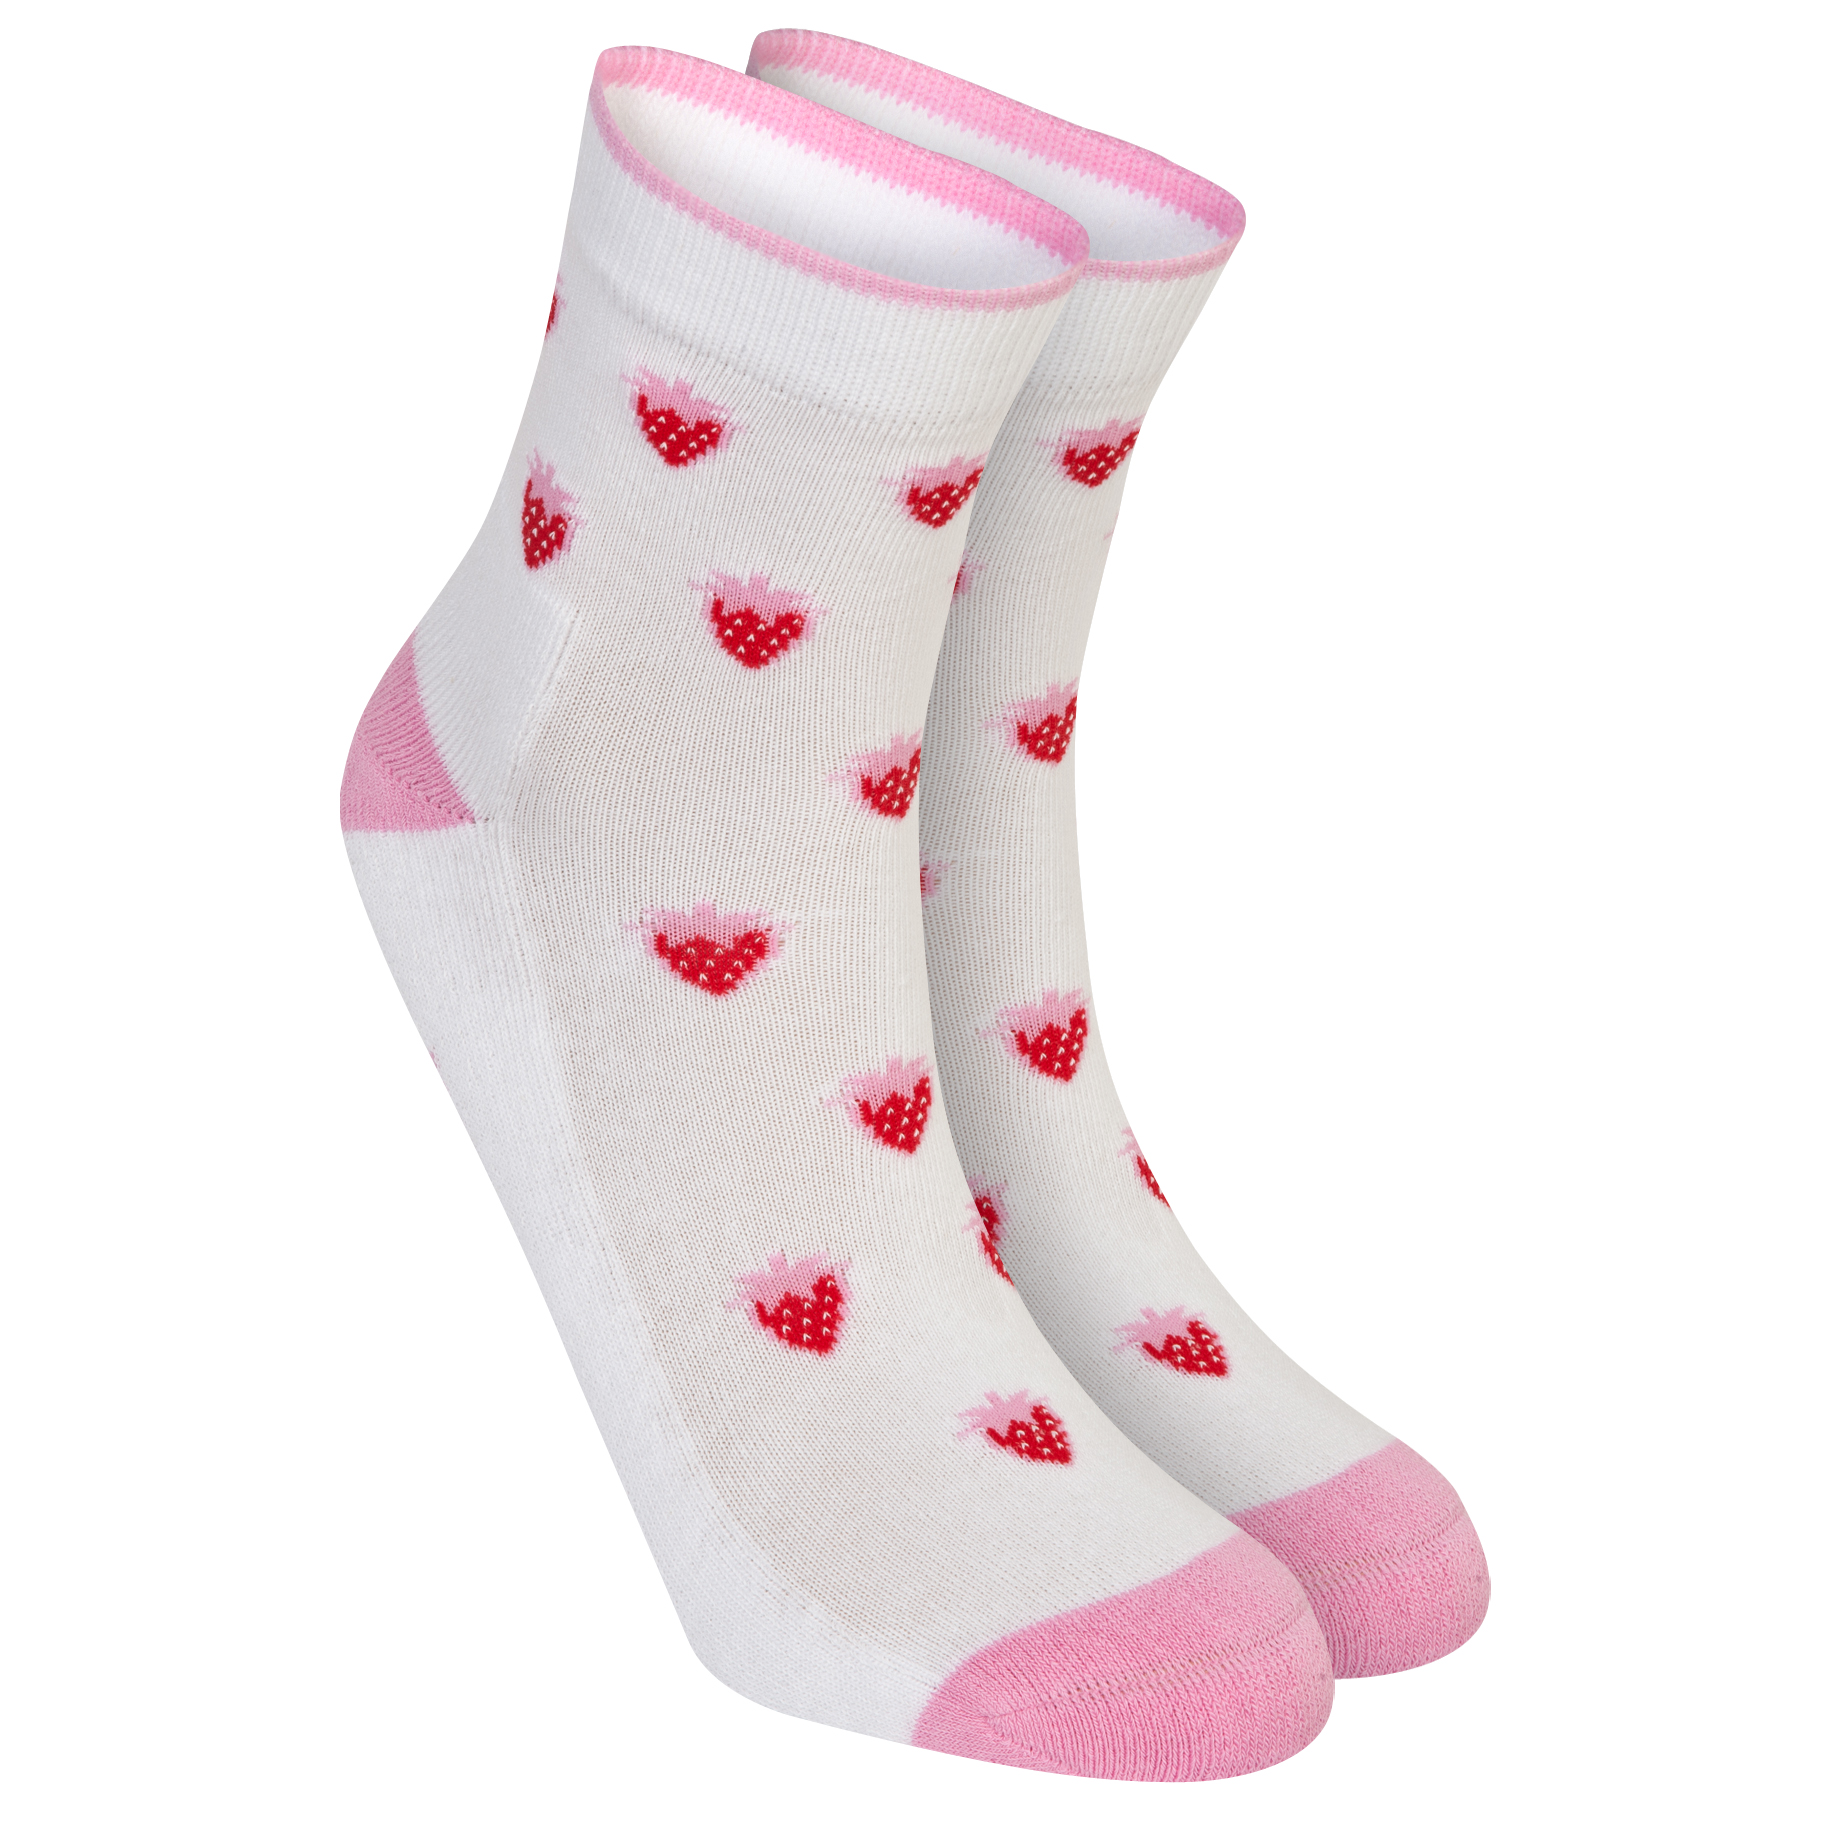 Wimbledon Strawberry Sock - Ladies White